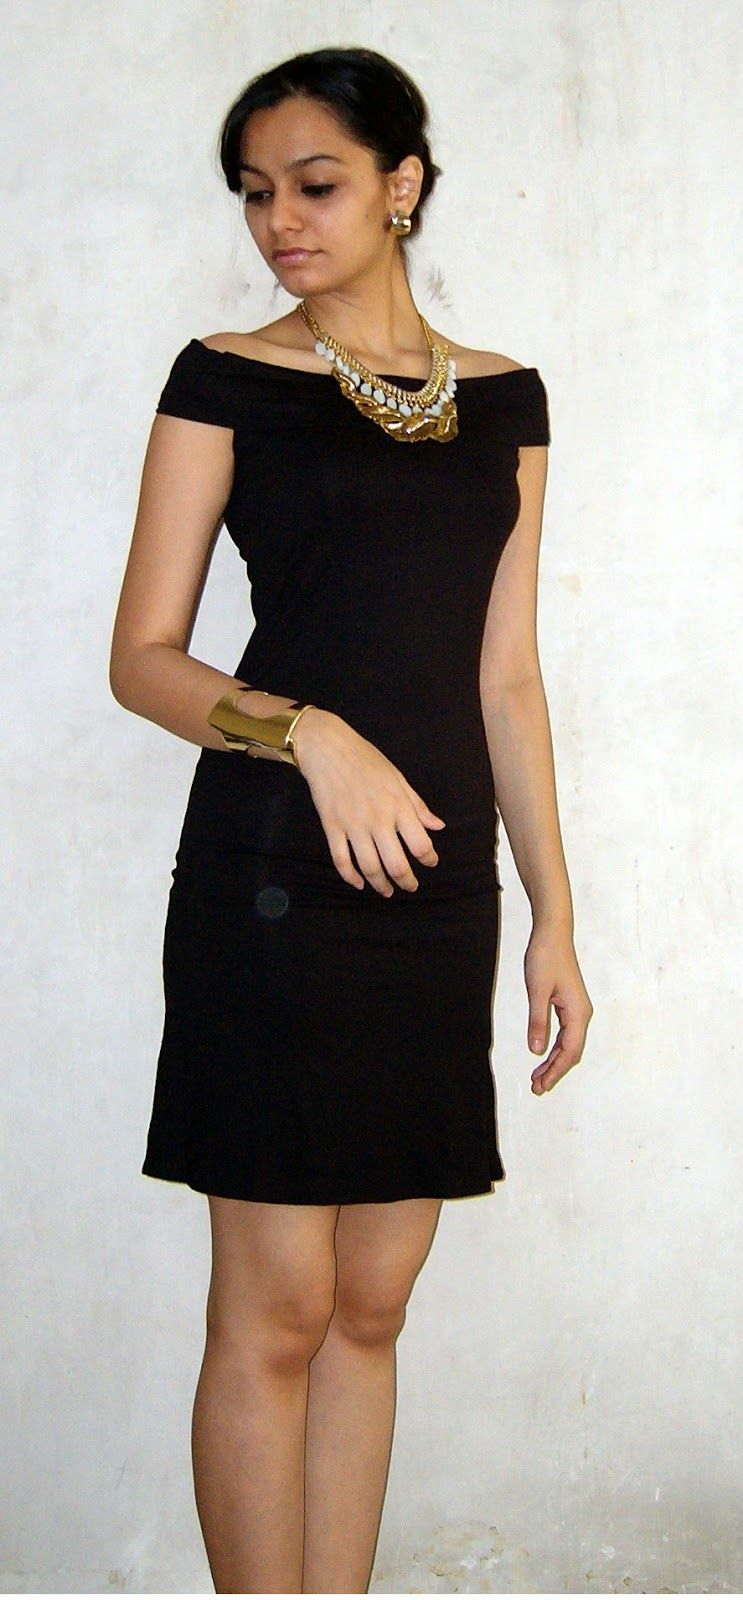 How To Wear Lbd How To Layer Necklaces Gold Necklace Gold Leaf Necklace Little Black Dress Trendy Party Dresses Evening Dress Fashion Casual Party Outfit [ 1600 x 743 Pixel ]